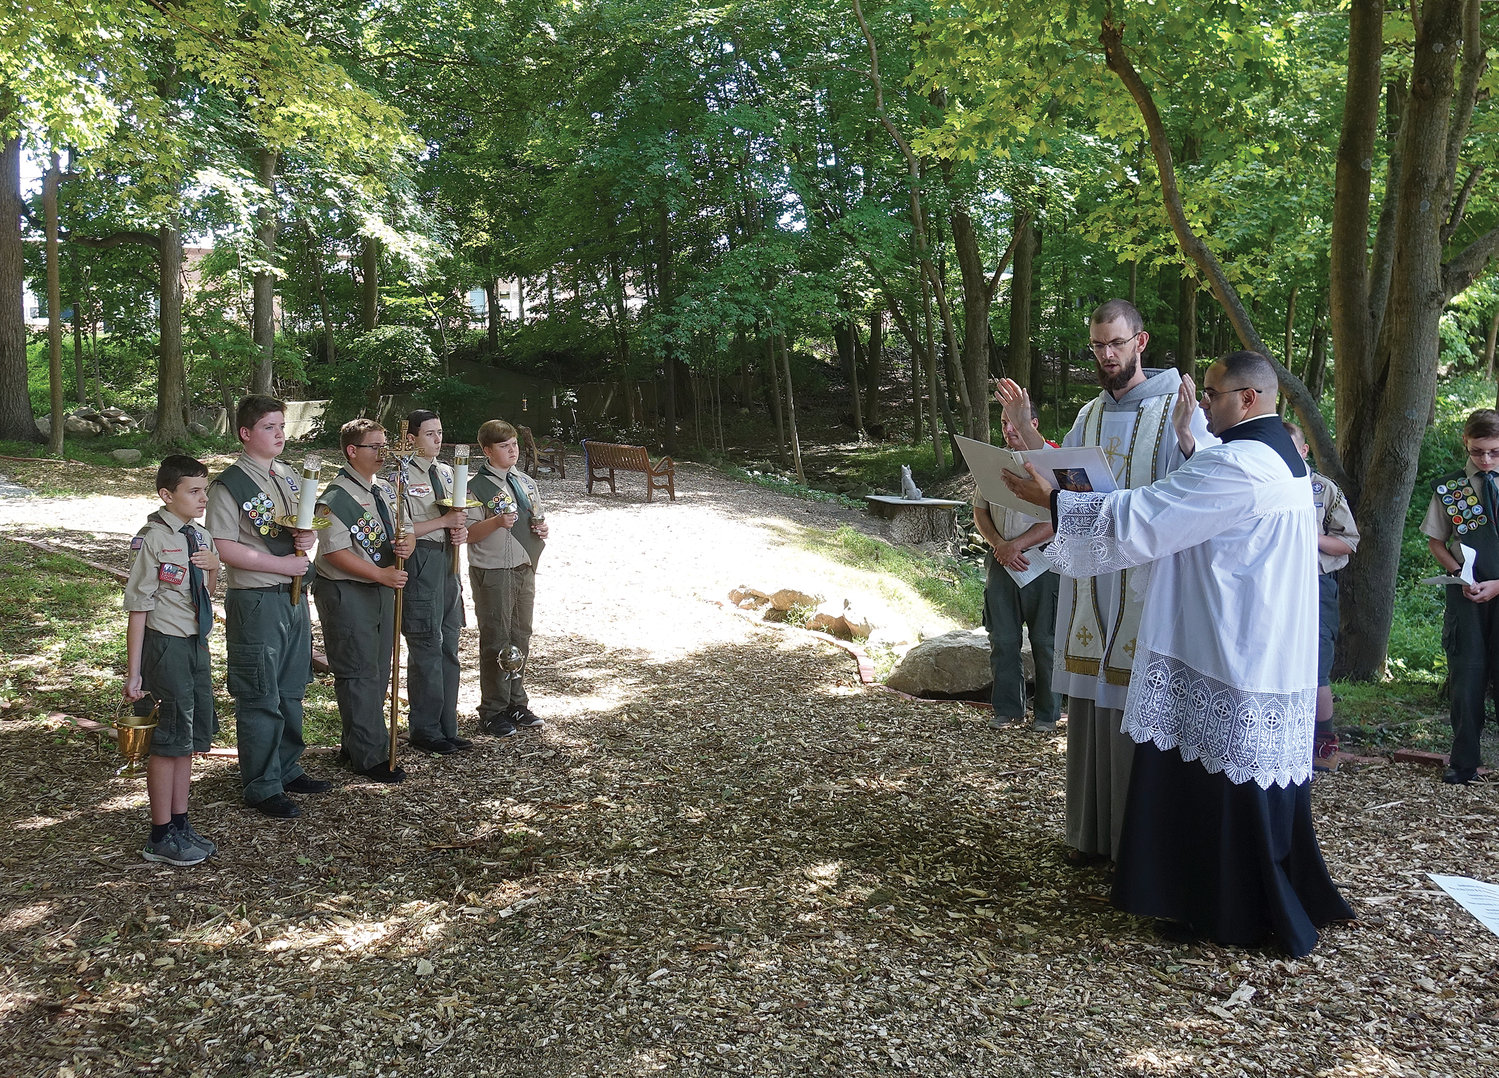 Father Gabriel Monahan, C.F.R., a Franciscan Friar of the Renewal, blessed and dedicated the St. Francis Prayer Garden and the Way of the Cross, with the assistance of Father John Figueroa, parochial vicar. The priests are members of the Class of 2019 at St. Joseph's Seminary, Dunwoodie, who were ordained by Cardinal Dolan at St. Patrick's Cathedral in May.